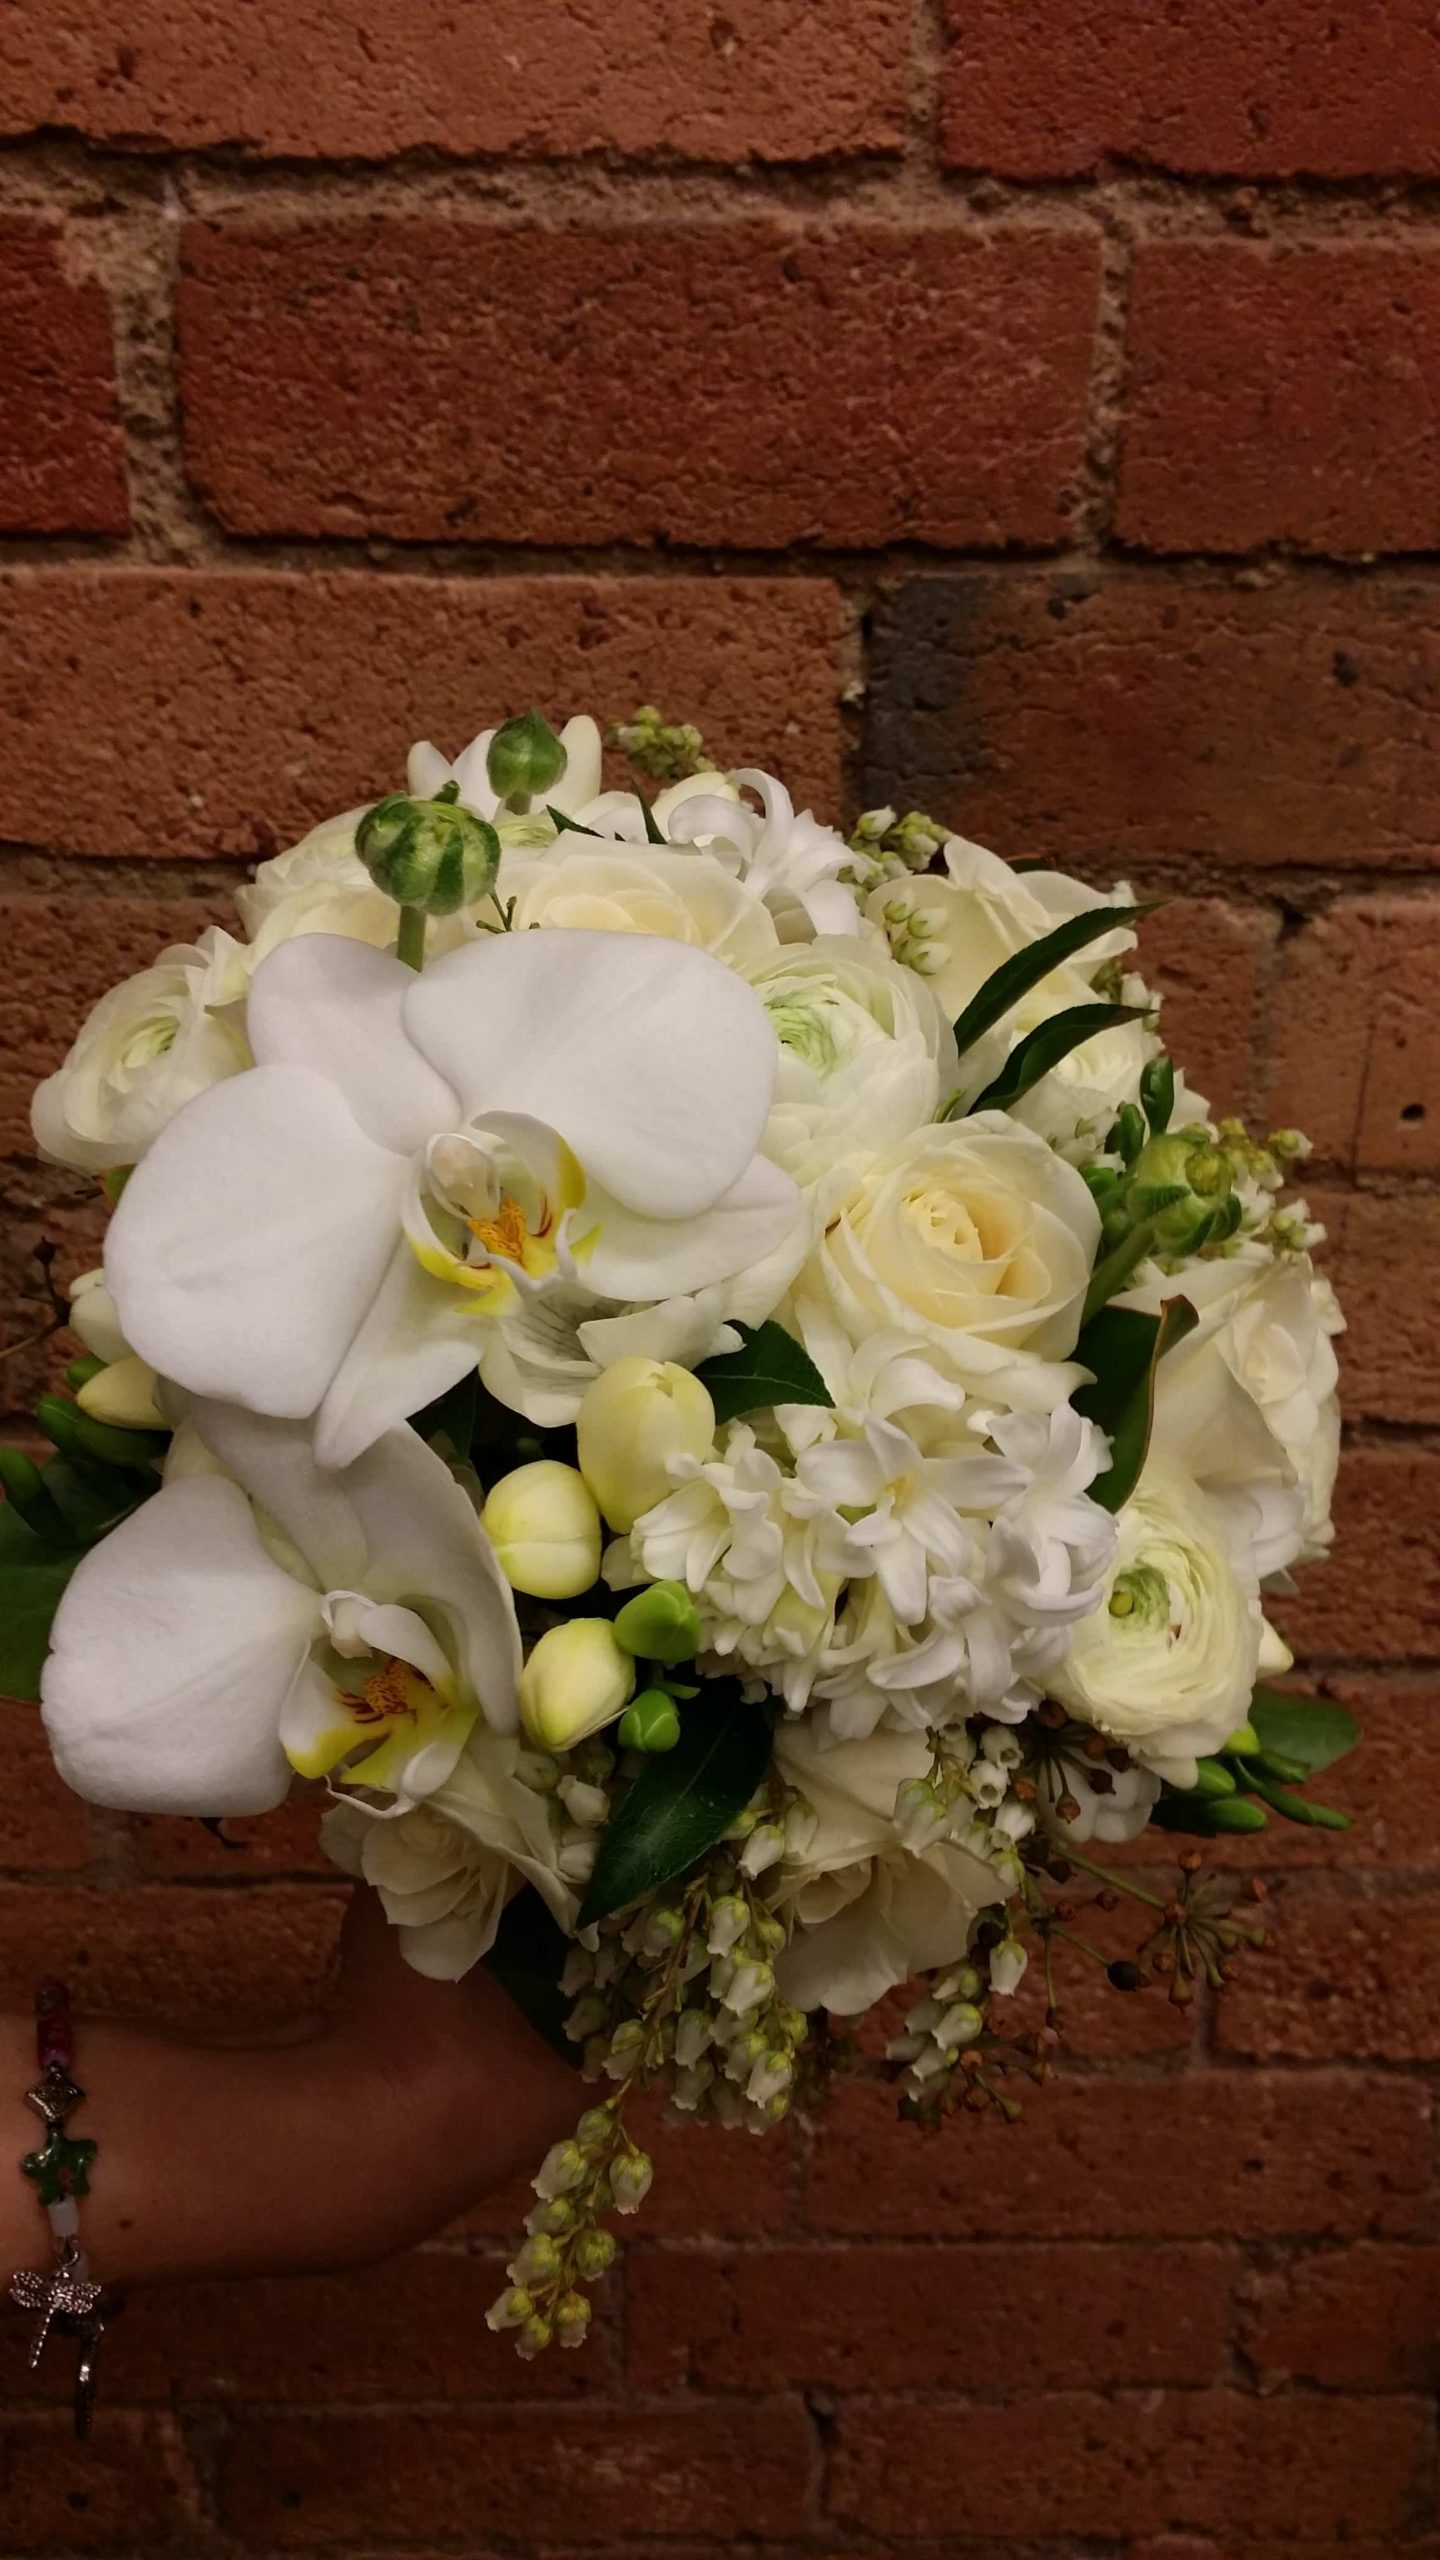 - image W.F.41-e1533087333741-scaled on https://theflowermerchant.com.au